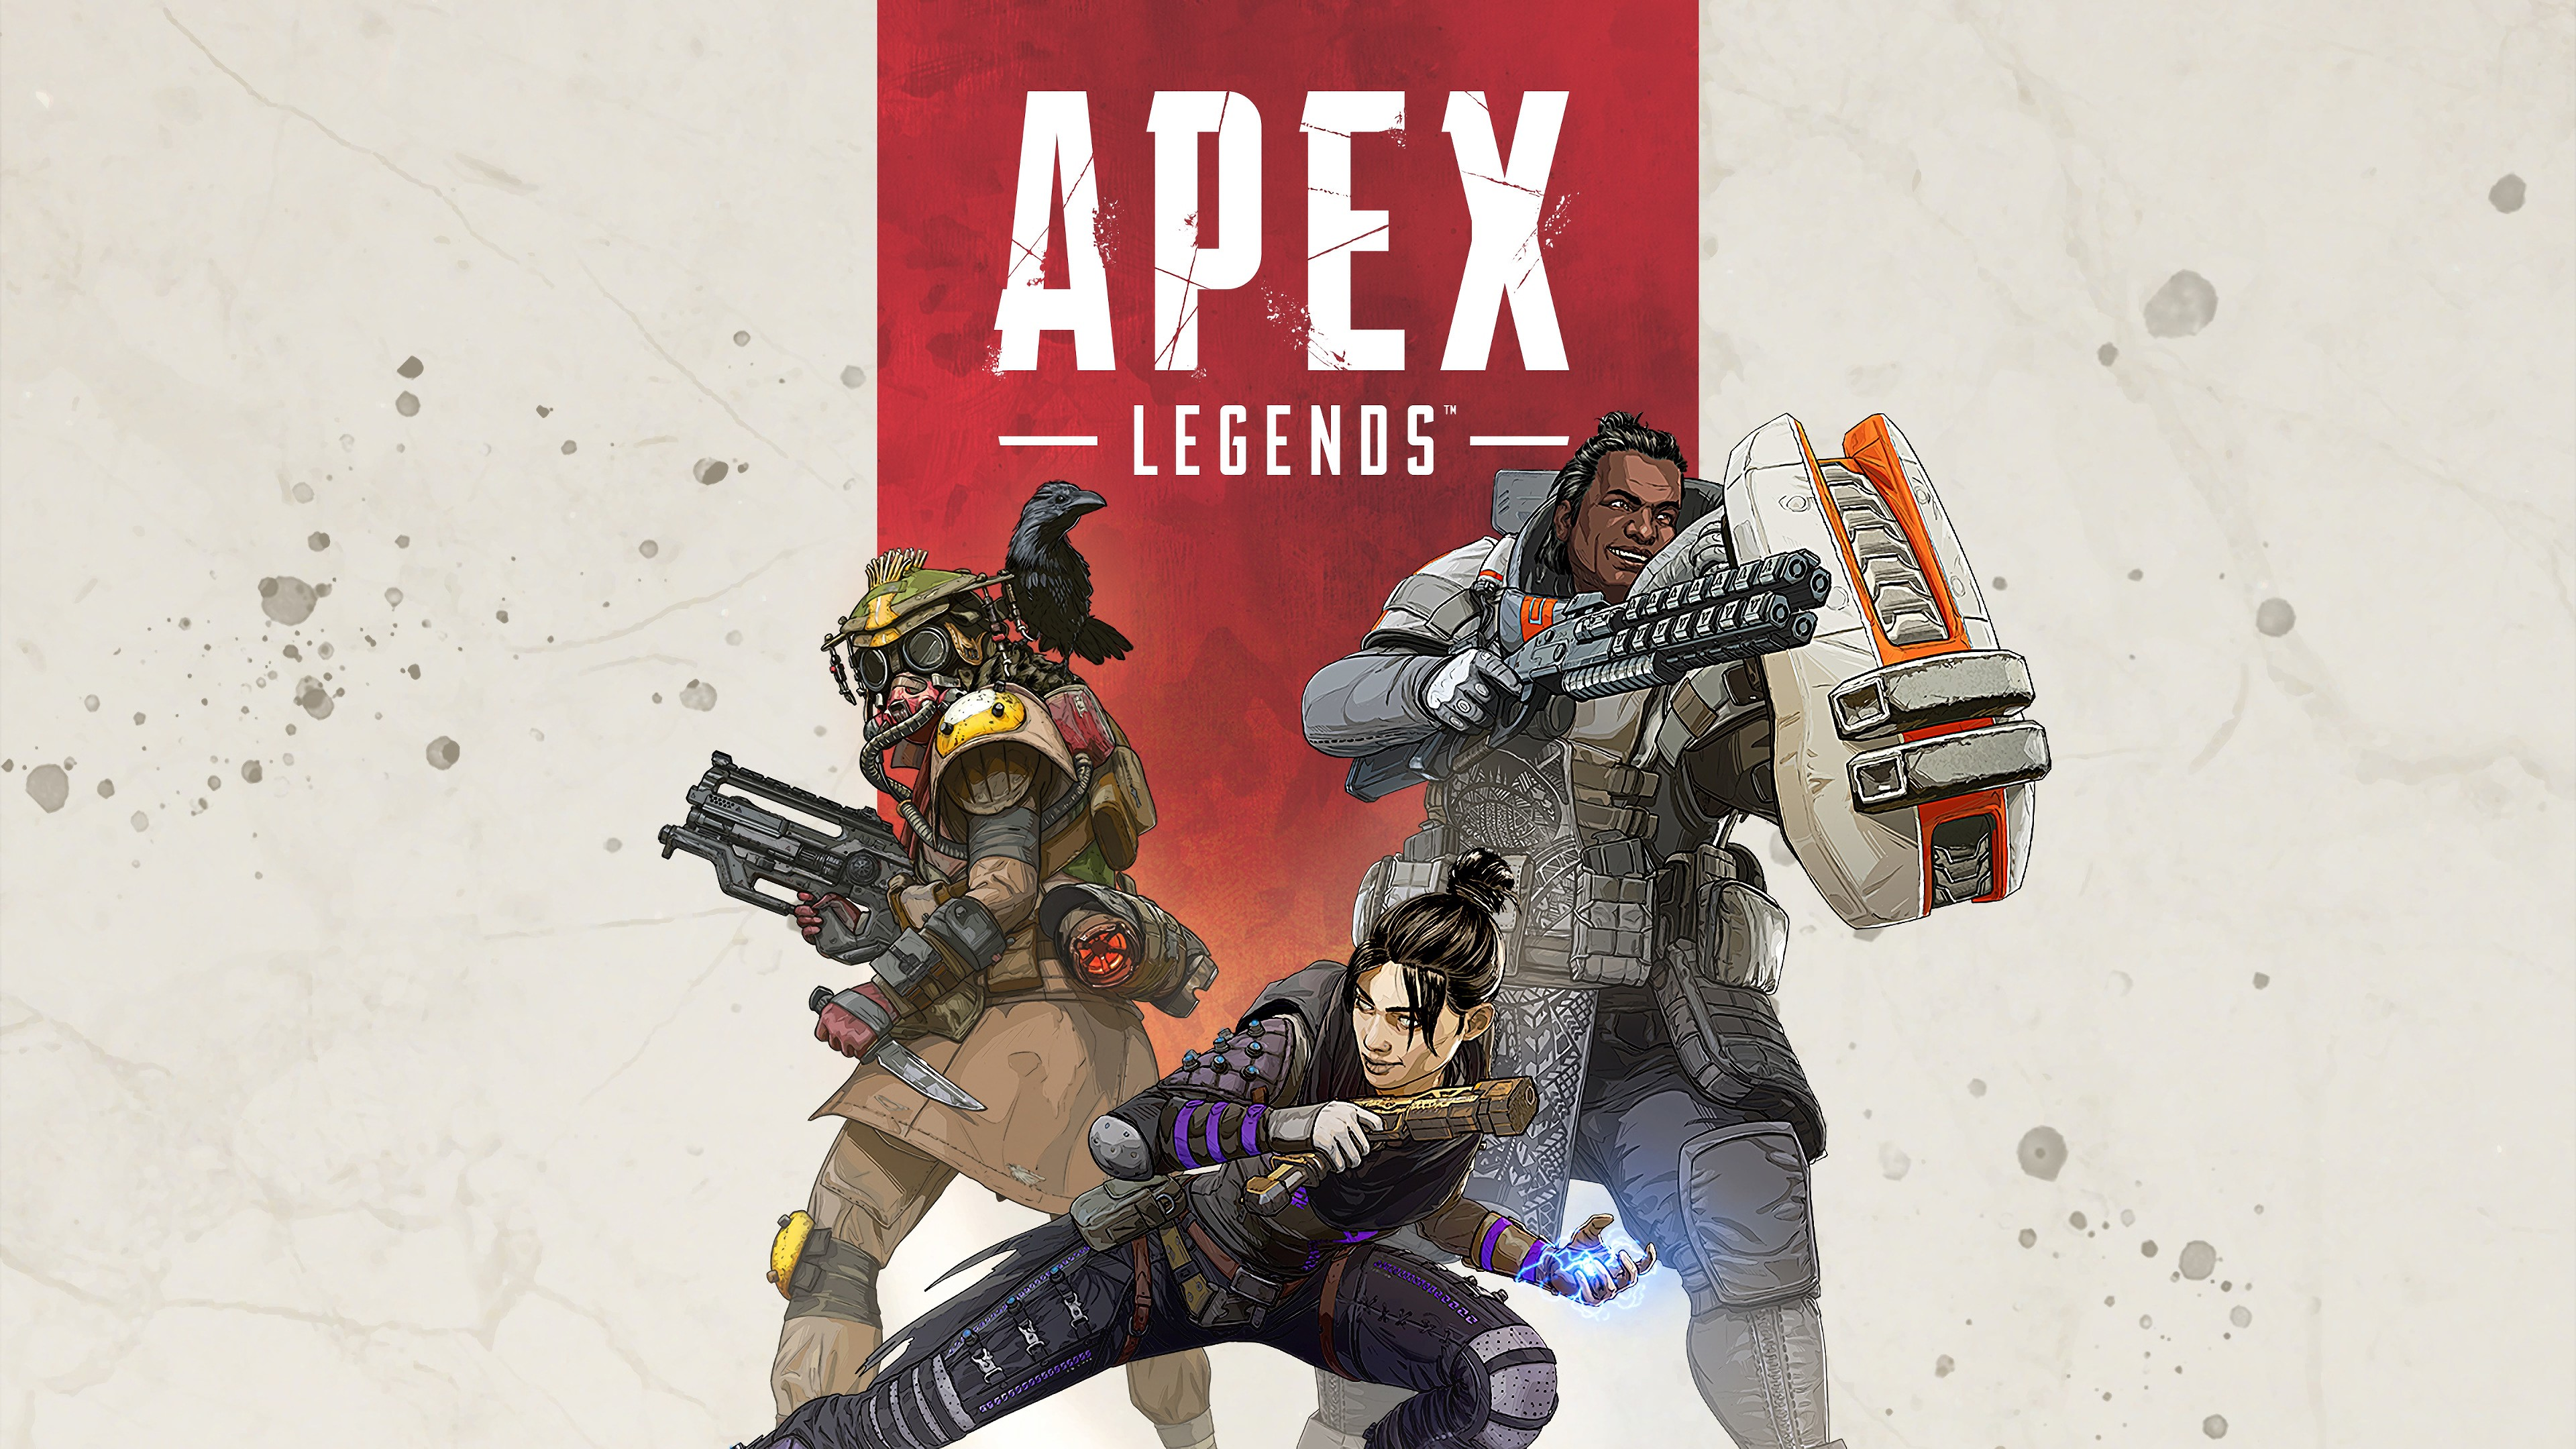 apex legends characters wraith gibraltar bloodhound 4K 20 - Apex Legends Poster 4k 2019 - Apex wallpaper 4k 2019, Apex phone wallpaper hd 4k, Apex legends wallpaper phone, Apex legends wallpaper hd 4kwallpaper, apex legends characters wallpaper hd 4k, Apex legends background hd 4k wallpaper, Apex Legends 4k wallpaper